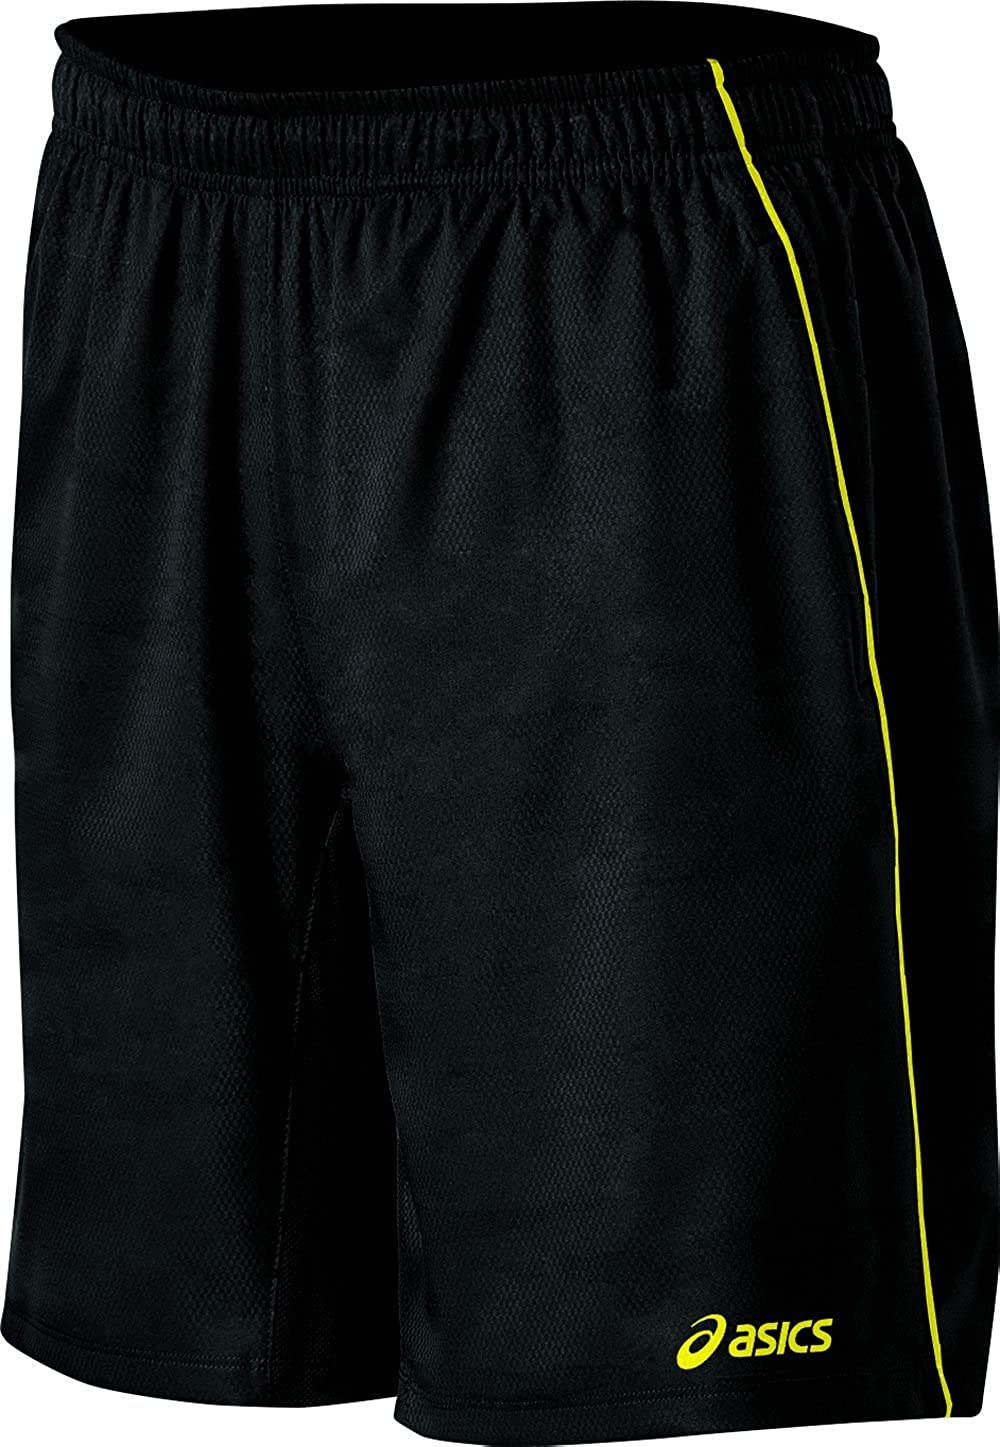 ASICS Men's 2-n-1 Tennis Short : Athletic Shorts : Clothing